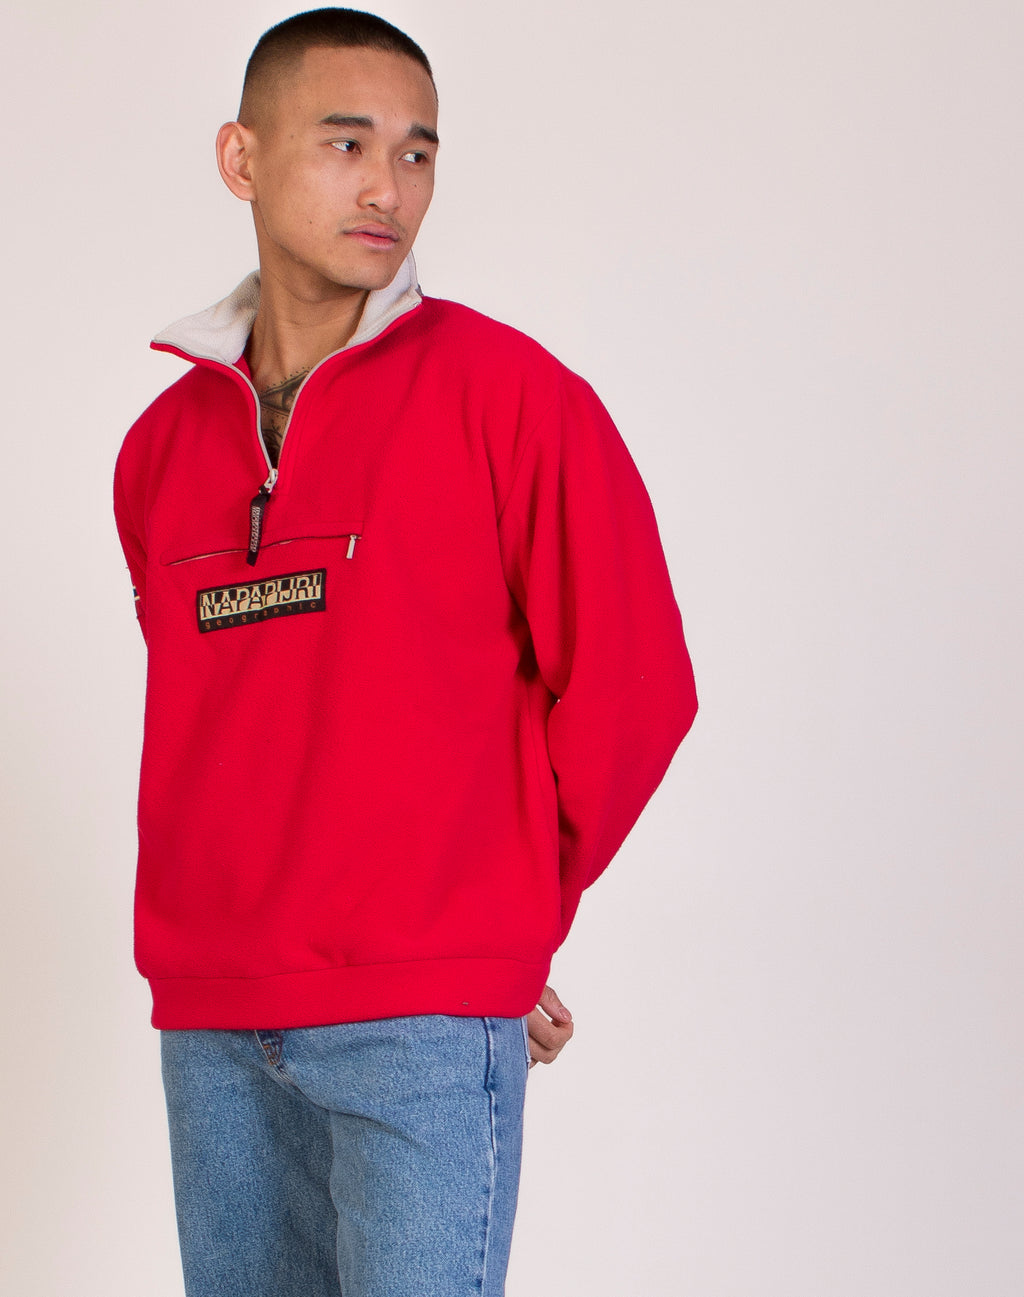 NAPAPIJRI RED FLEECE PULLOVER